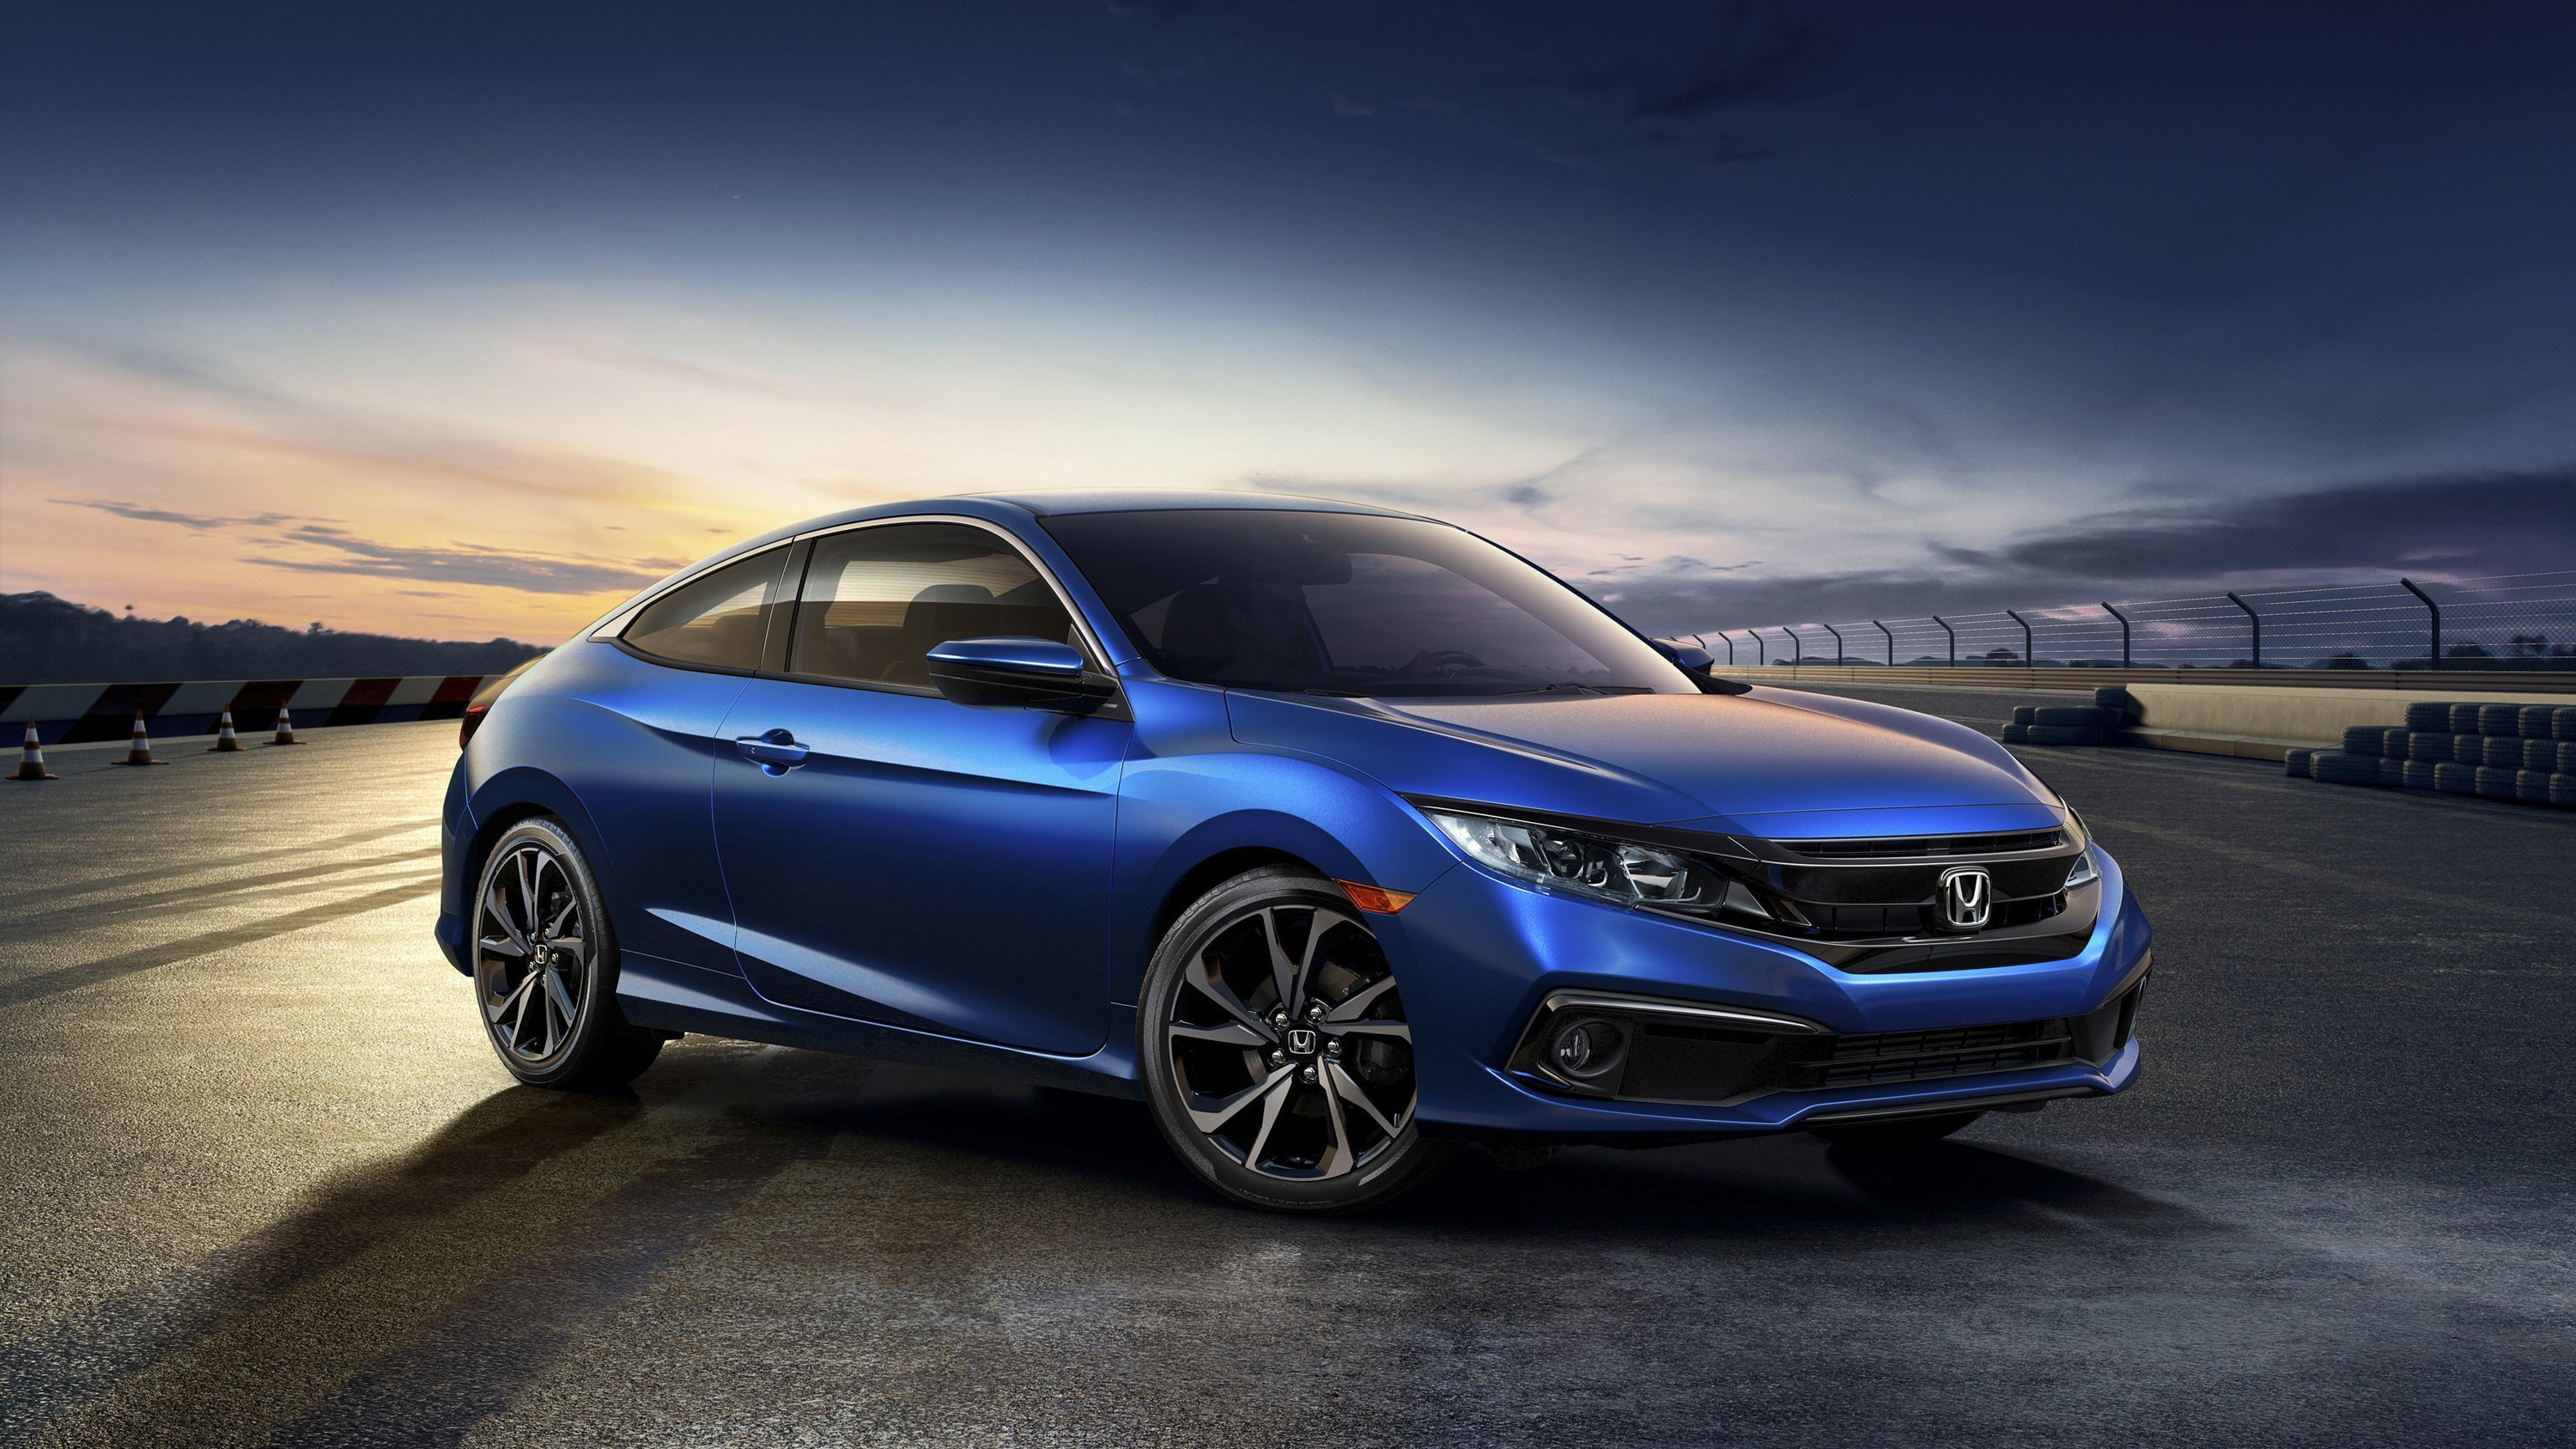 New The 2019 Honda Civic Is Safer And Better Looking Top Speed On This Month